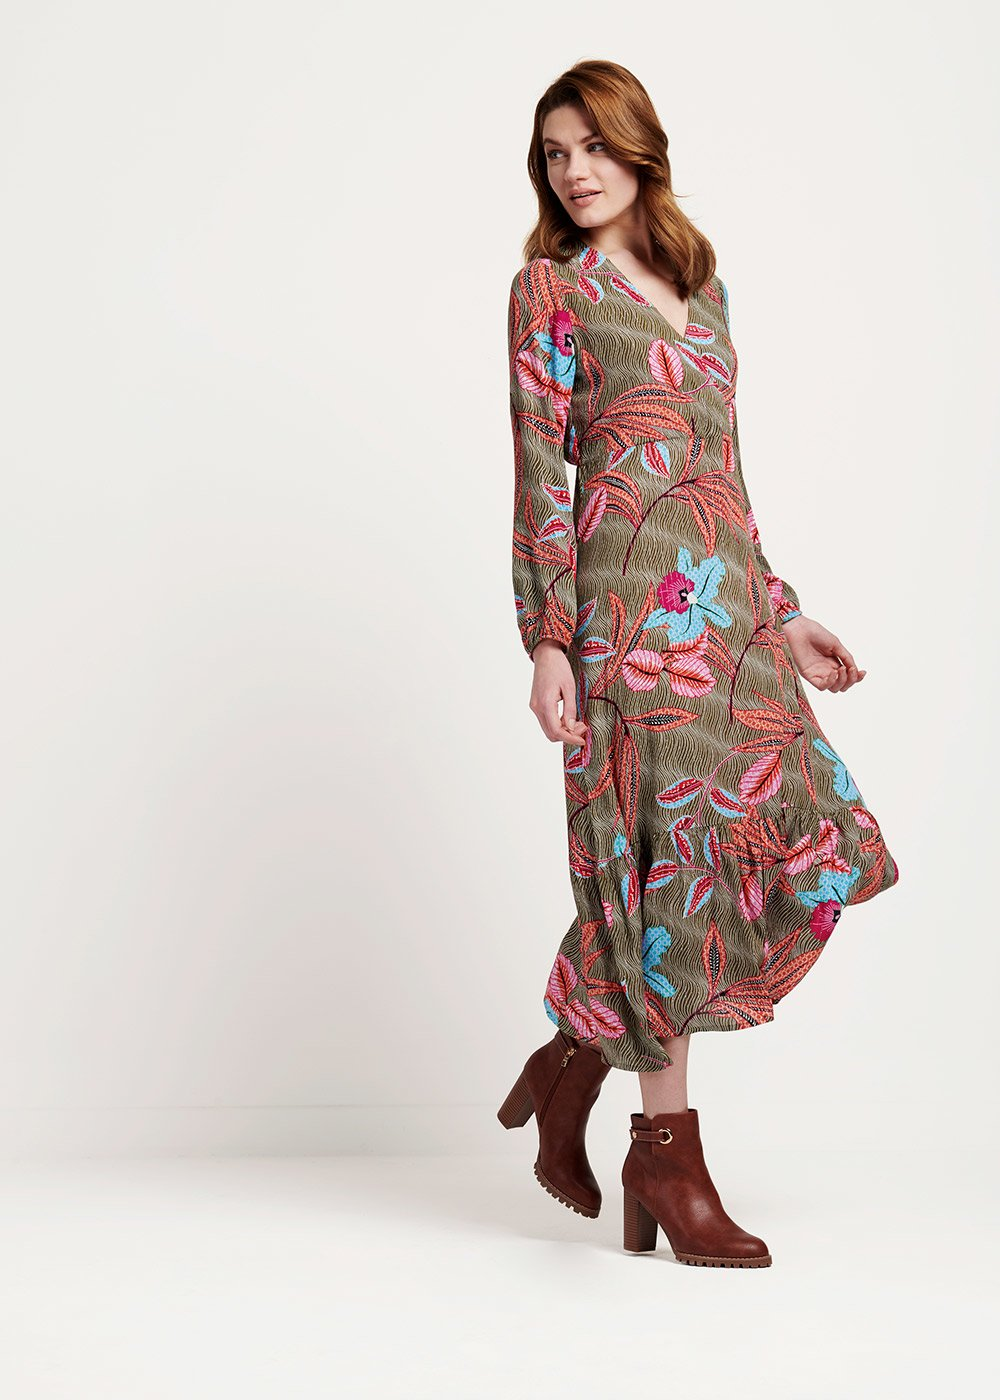 Ashlie dress with floral pattern - Timo / Gloss / Fantasia - Woman